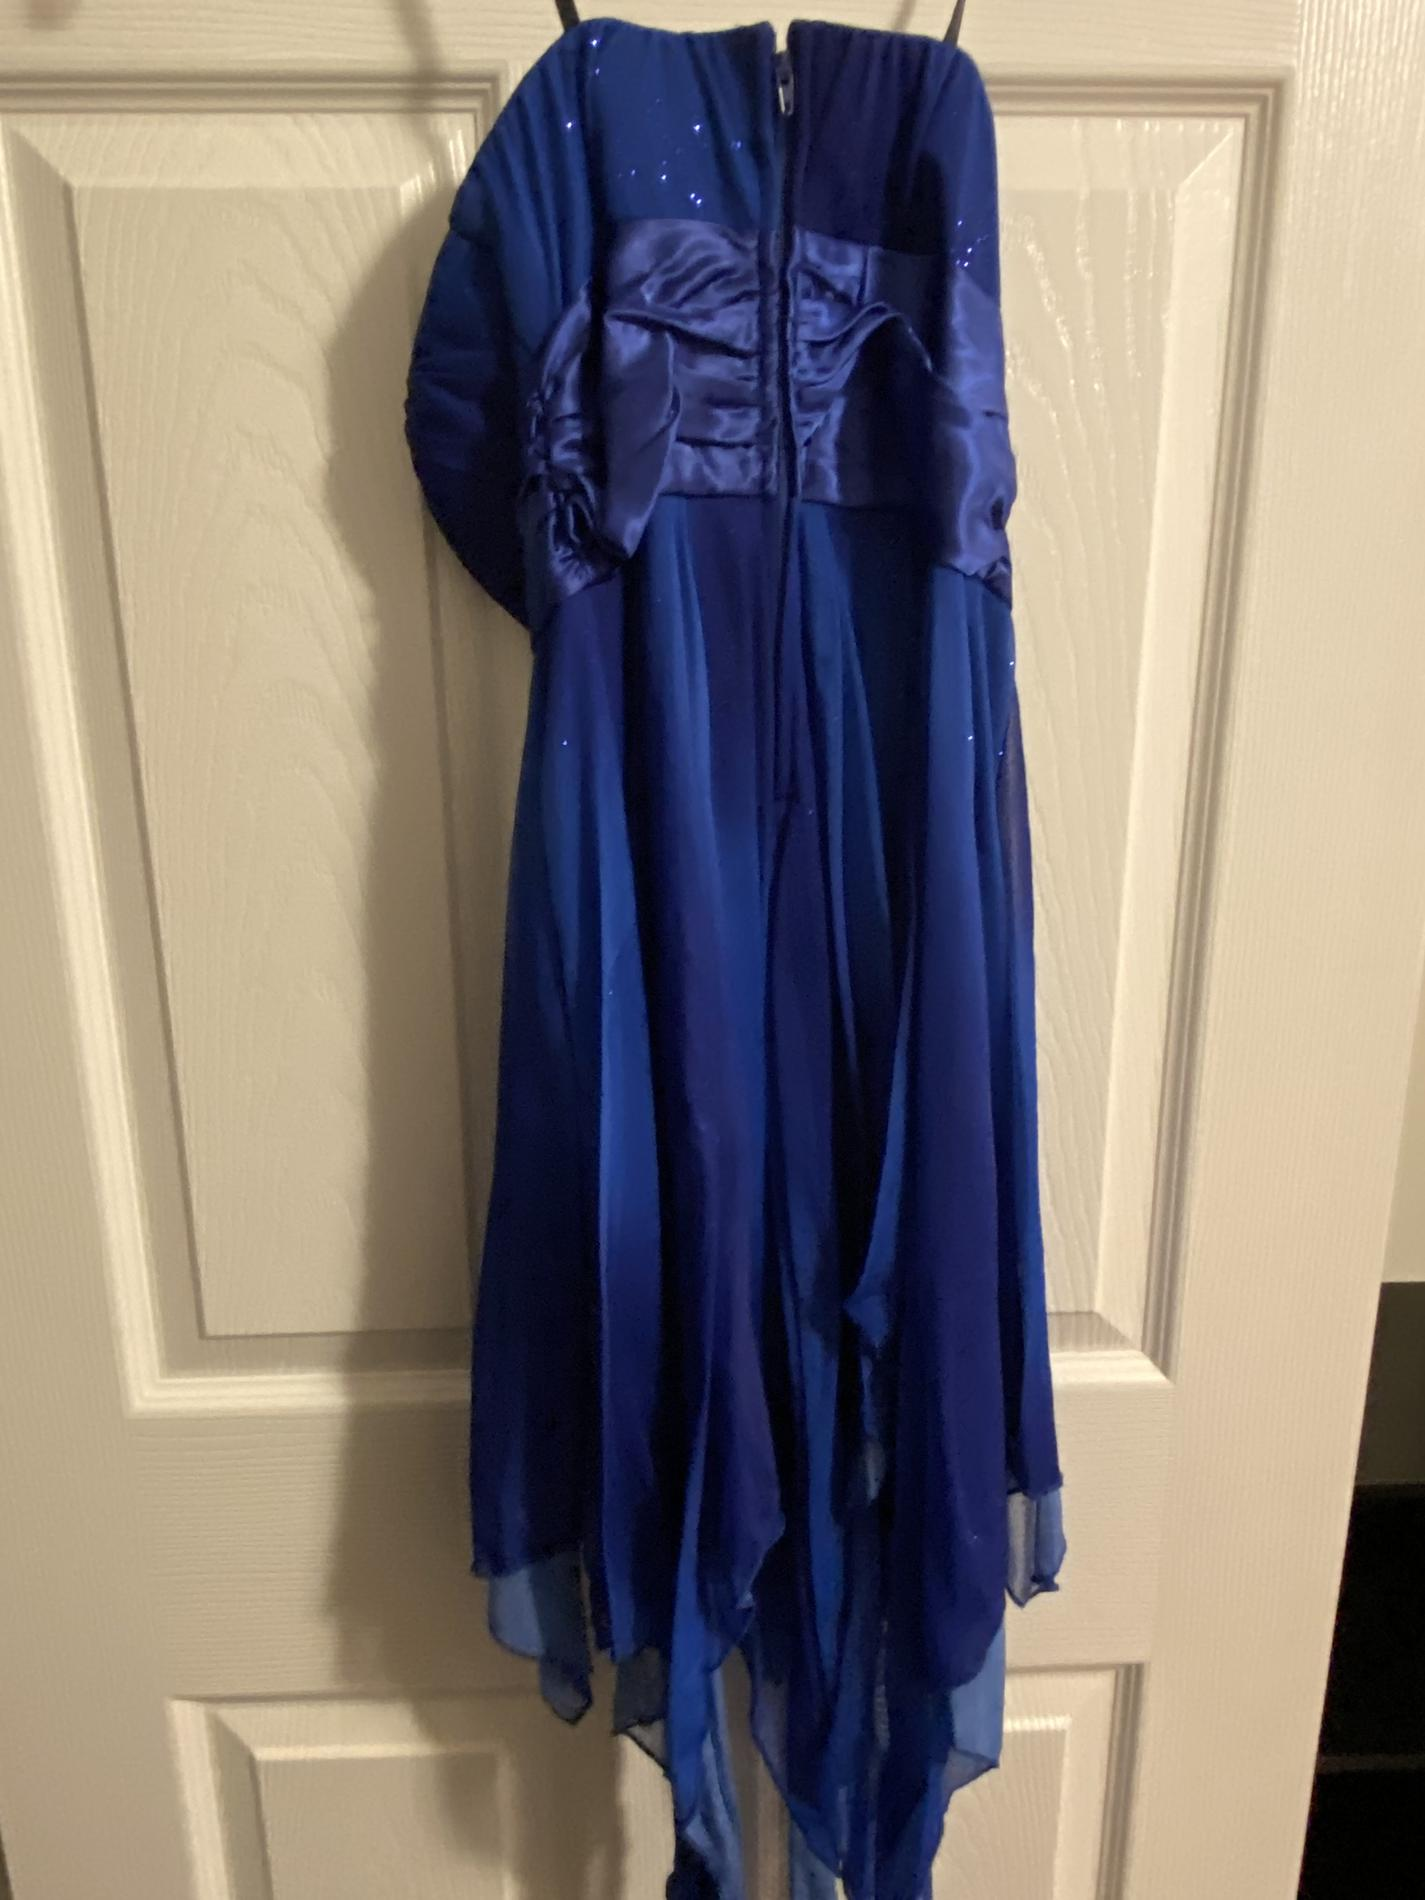 deb Blue Size 2 Cocktail Dress on Queenly